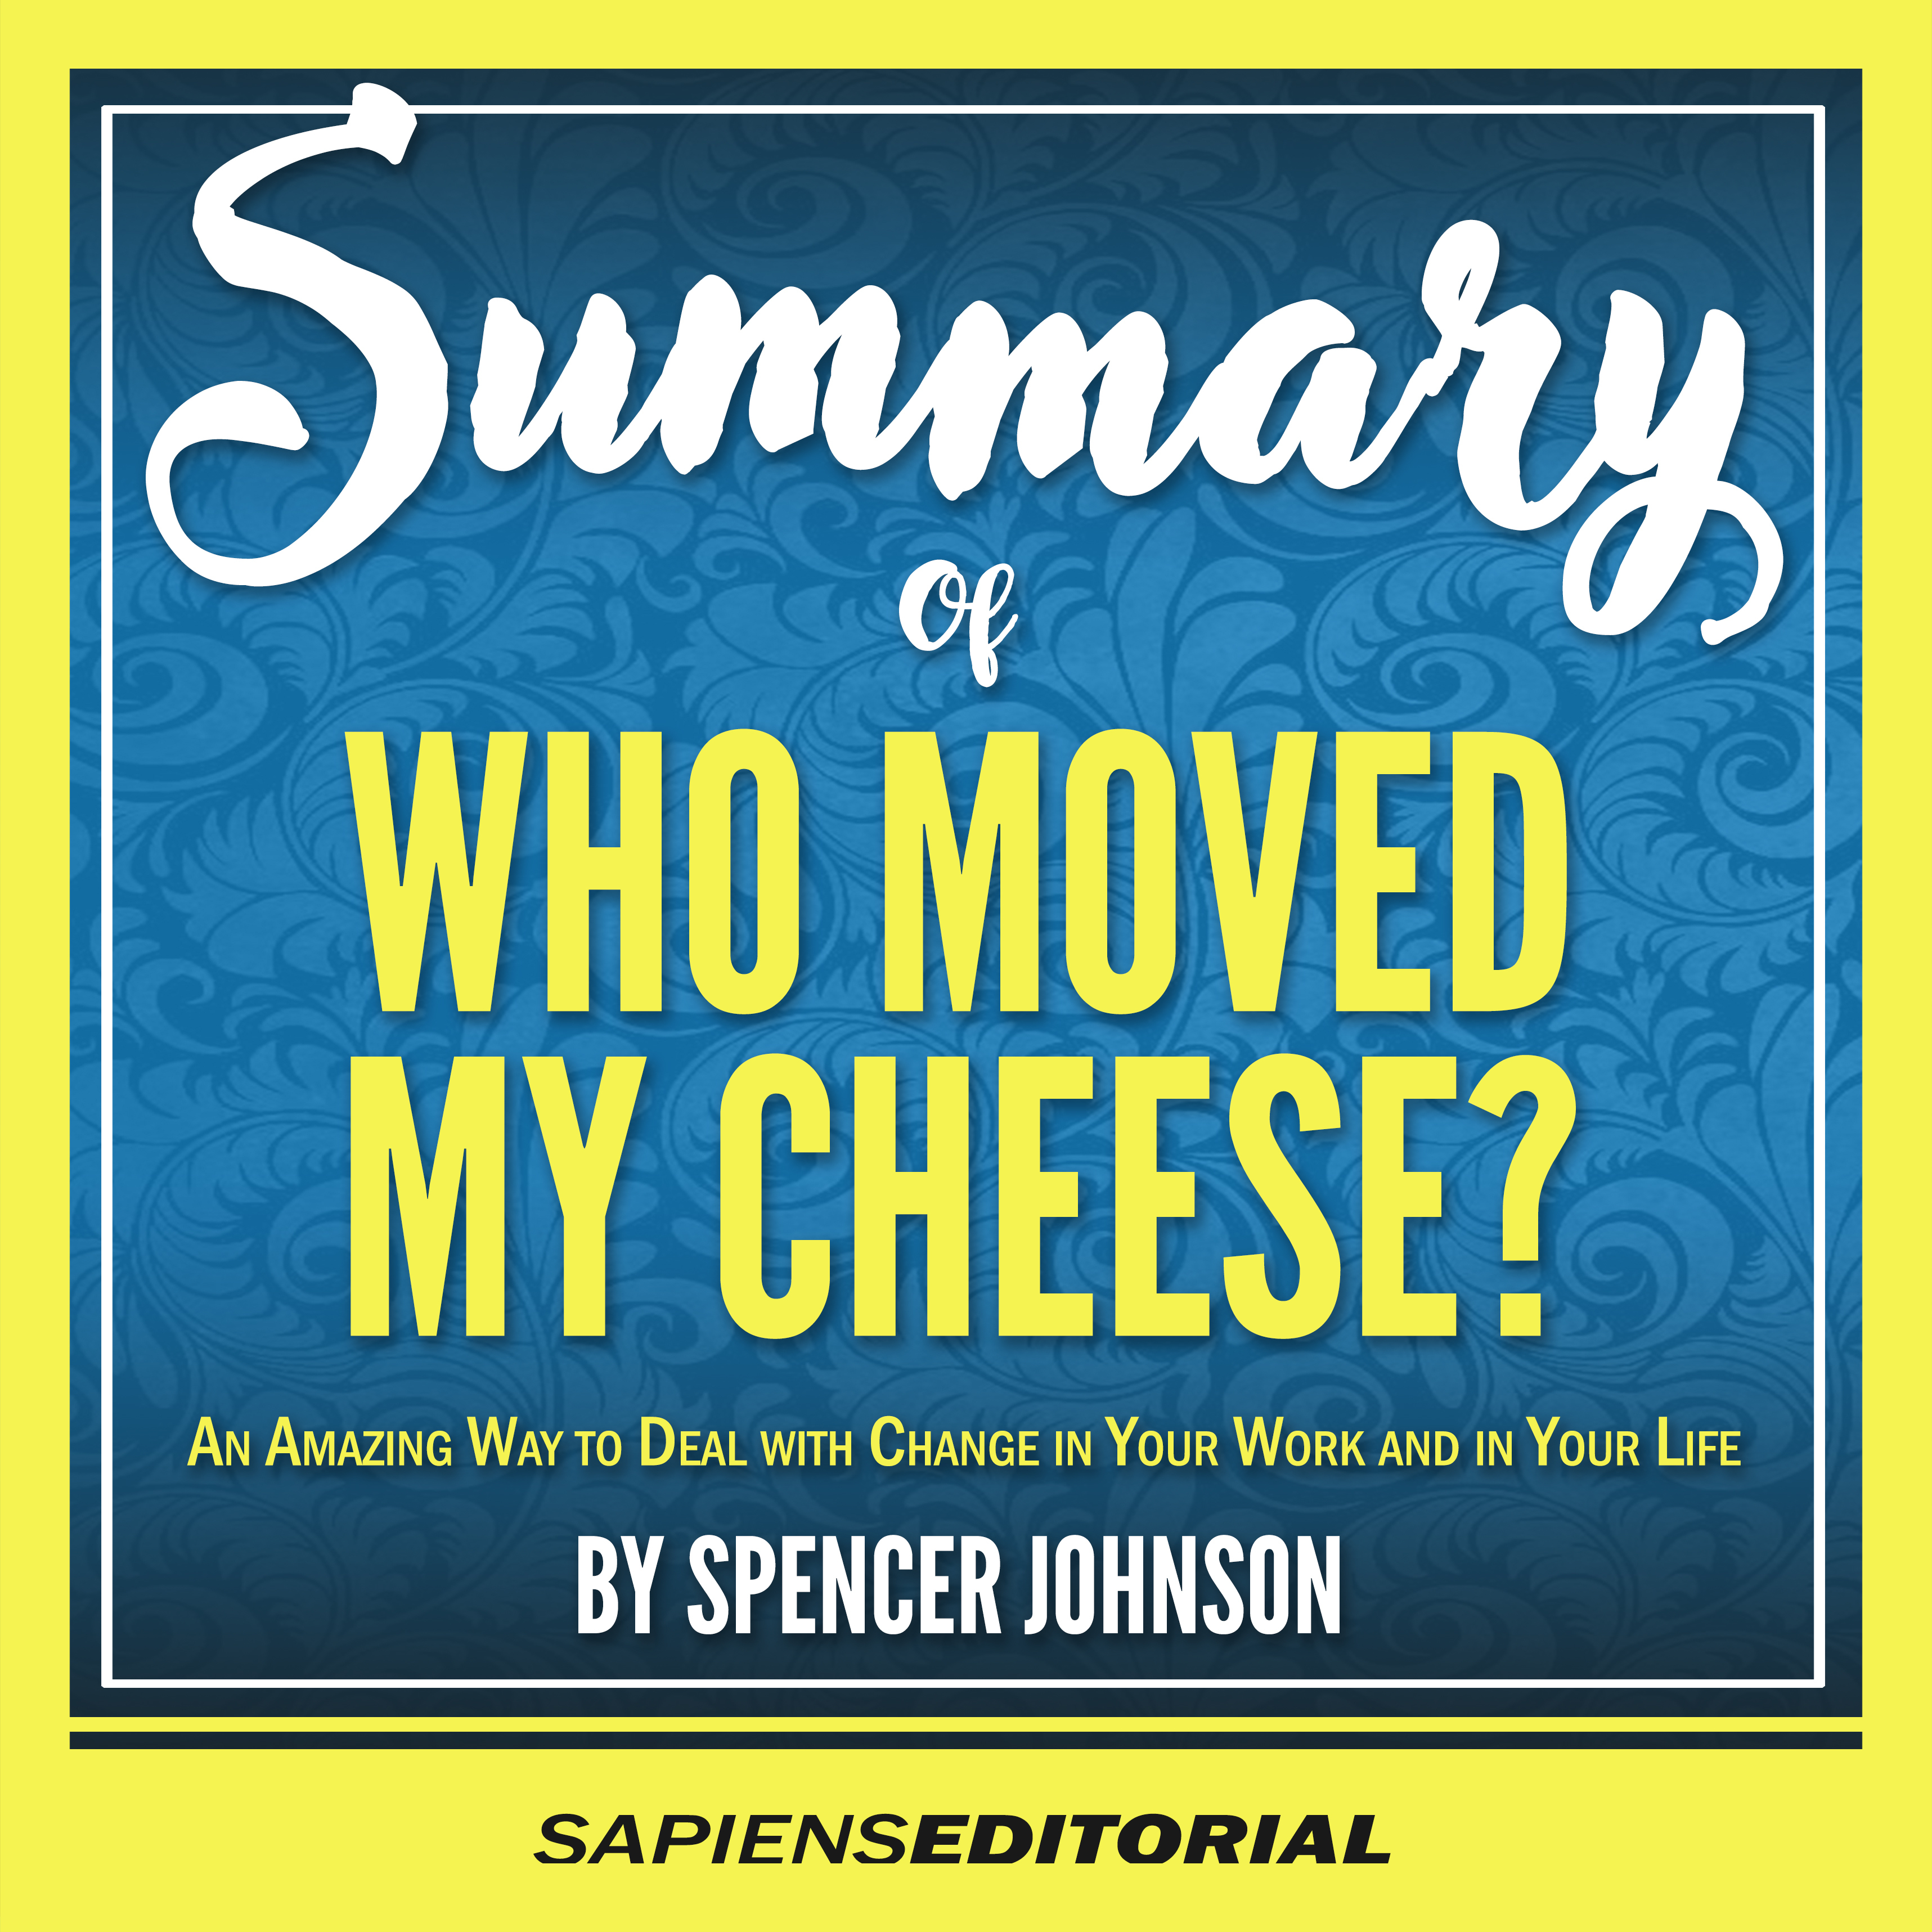 who moved my cheese by spencer johnson summary